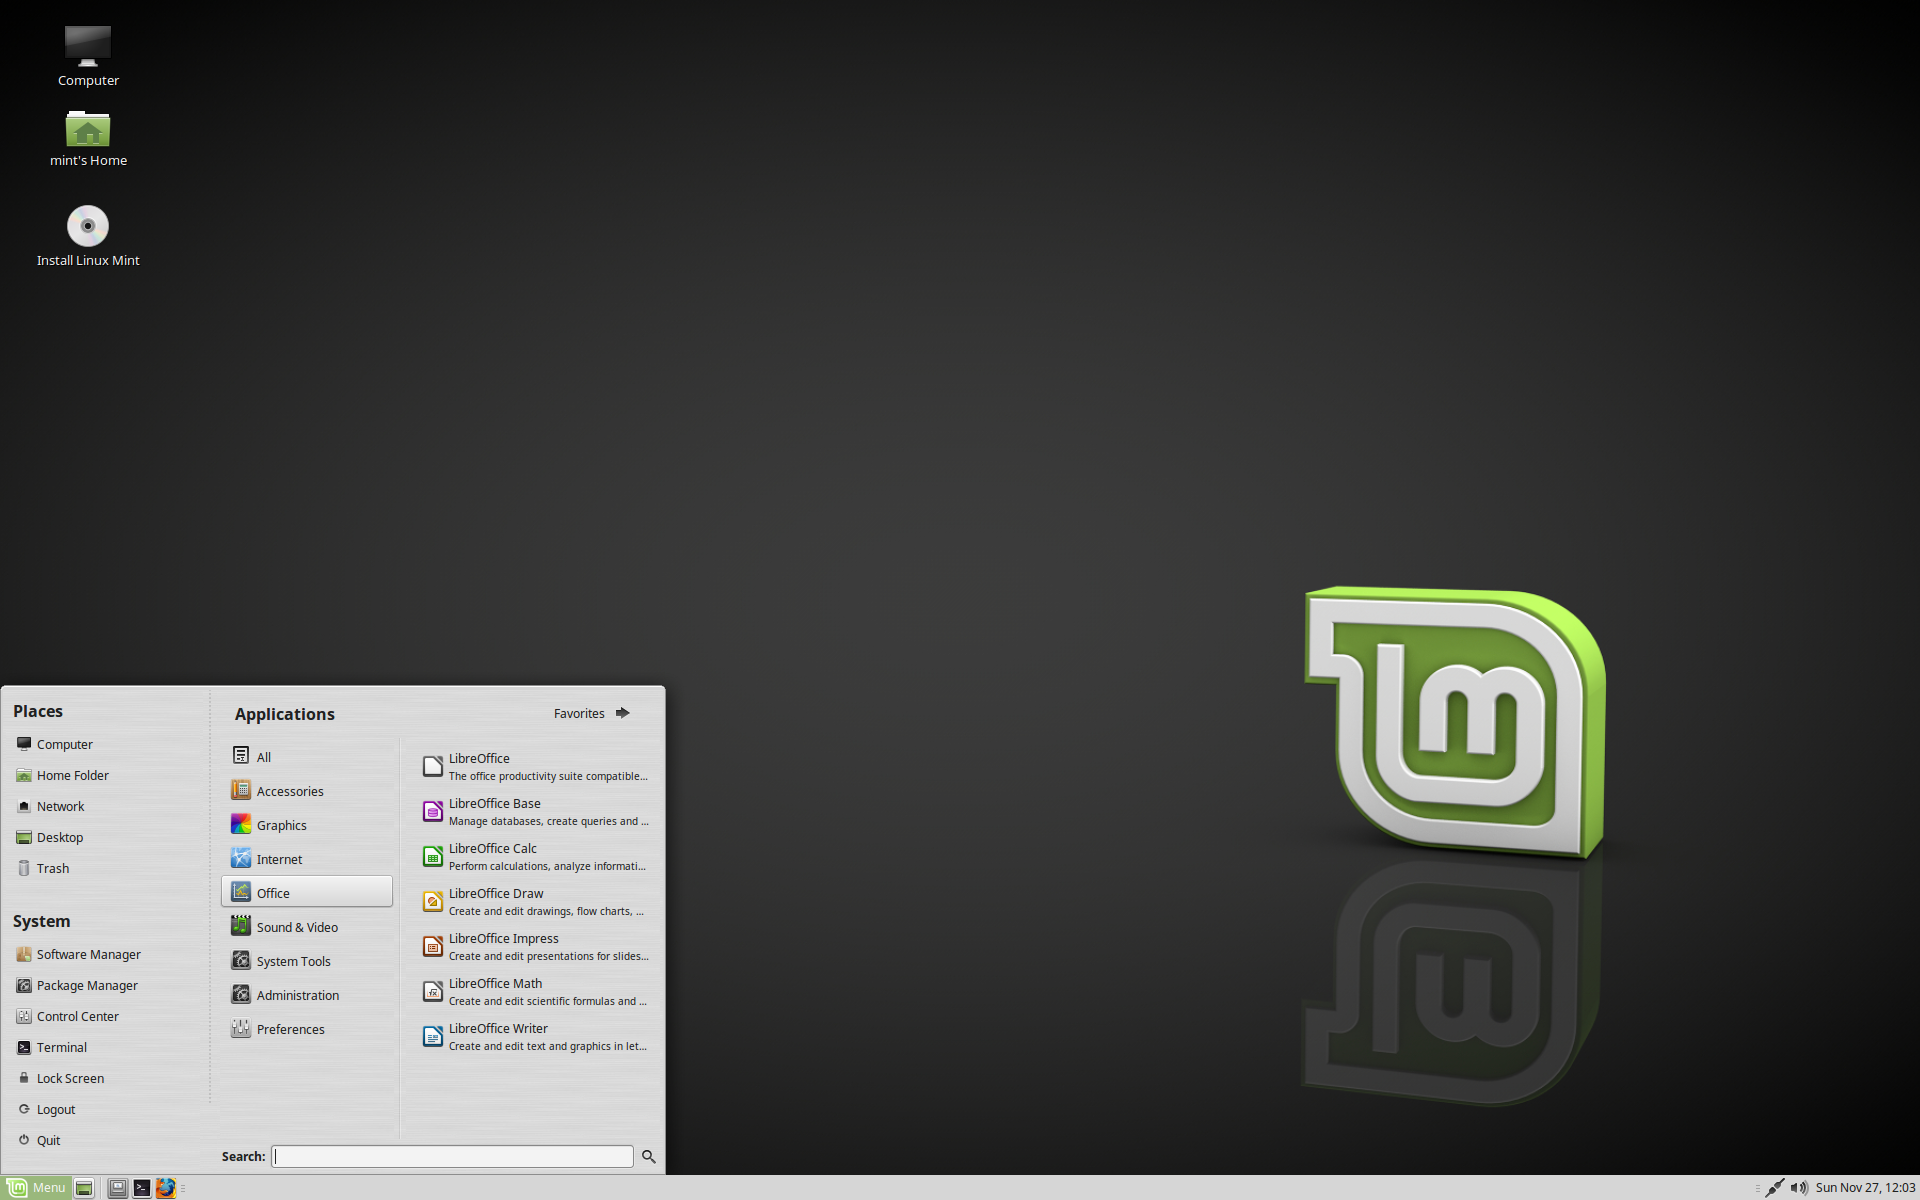 https://www.linuxmint.com/pictures/screenshots/serena/mate.png